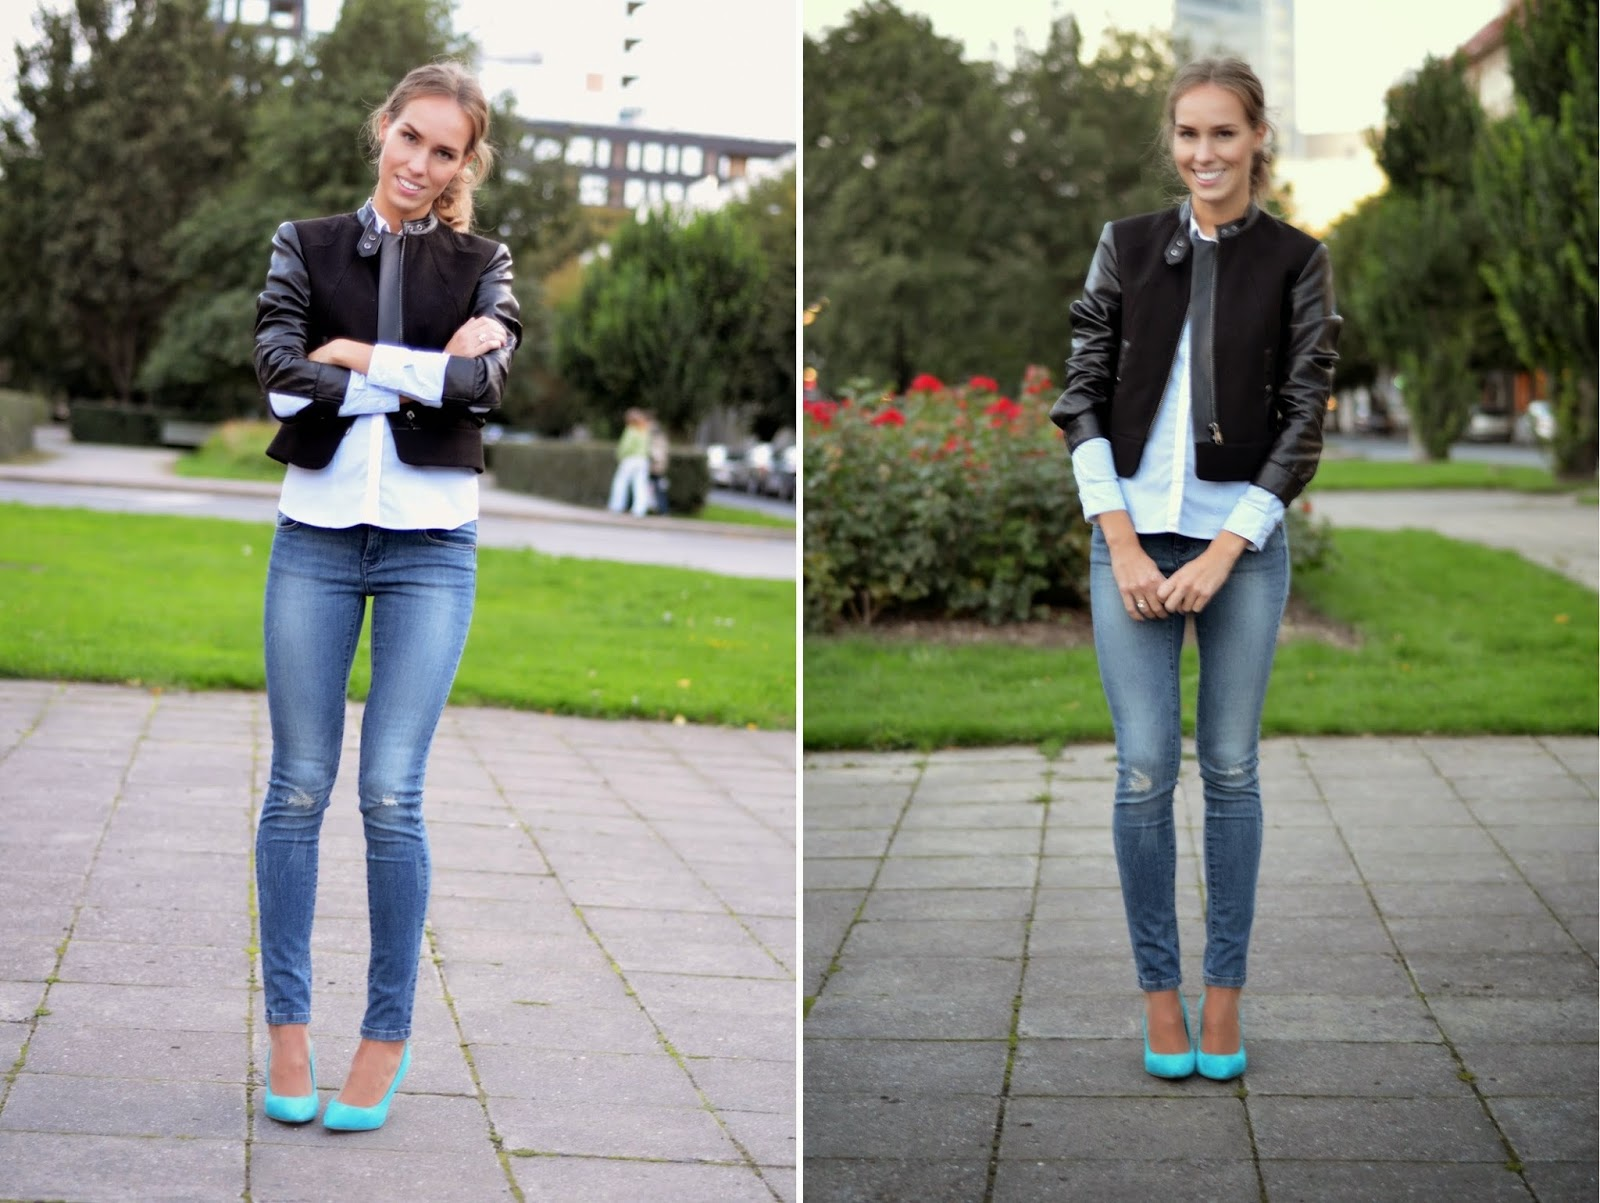 hm-jacket-shirt-zara-jeans-river-island-electric-blue-heels